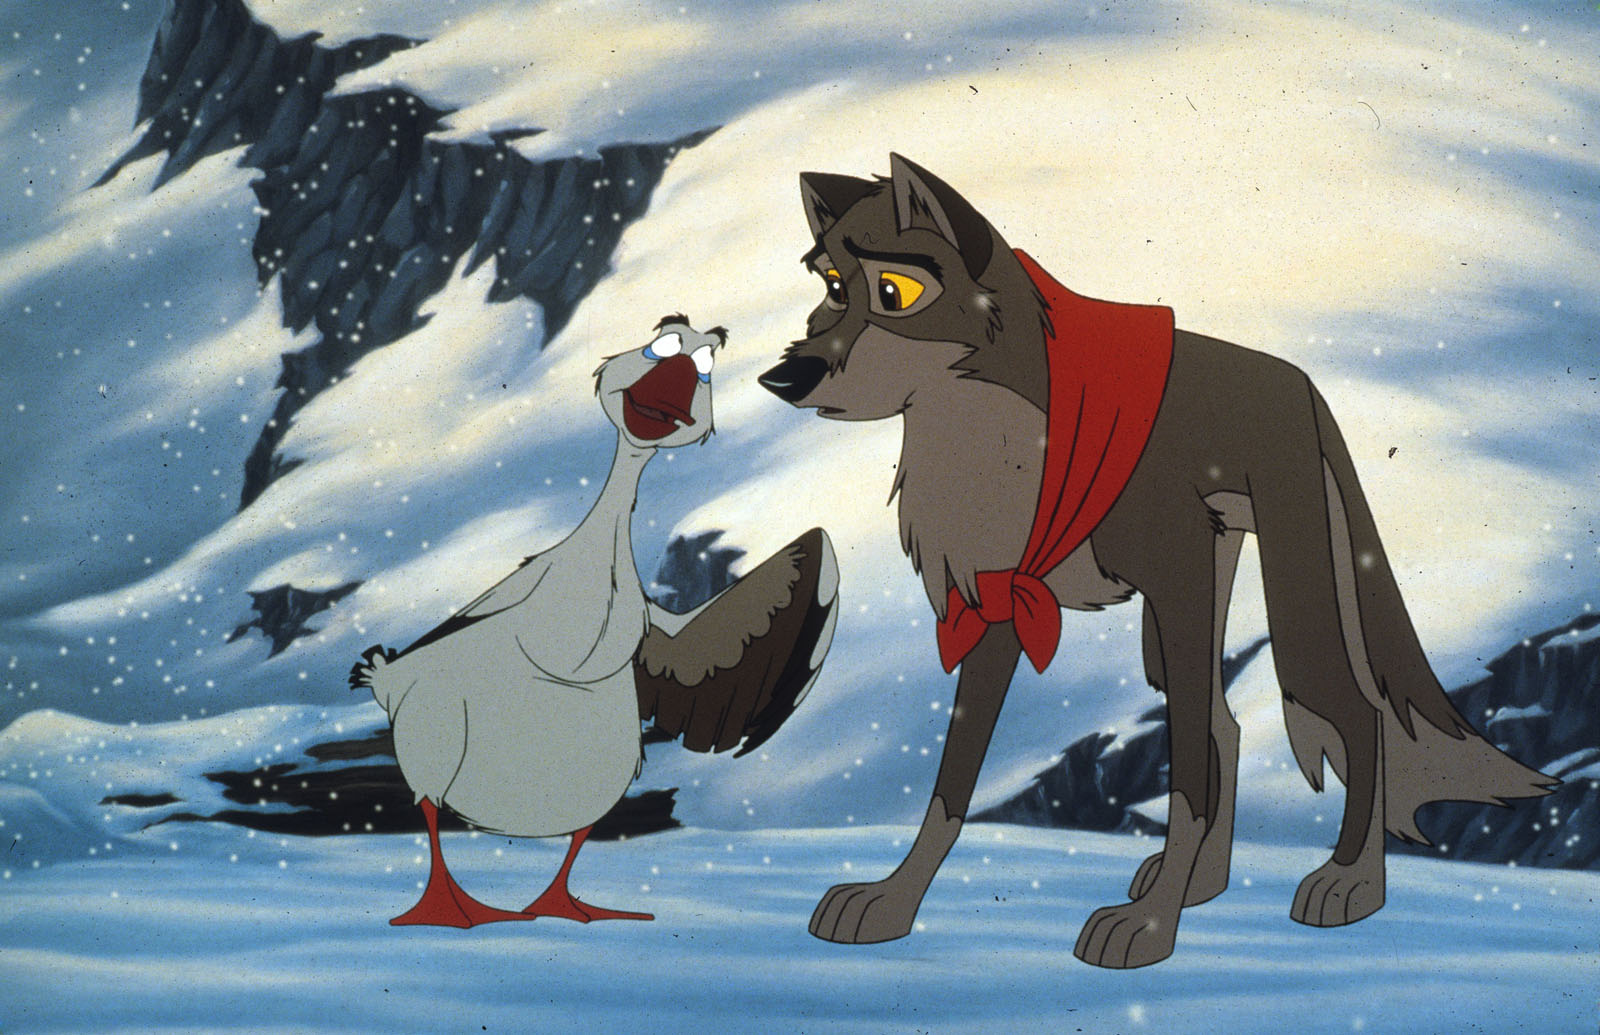 Balto the wolf dog (voiced by Kevin Bacon) with Boris the goose (voiced by Bob Hoskins) in Balto (1995)